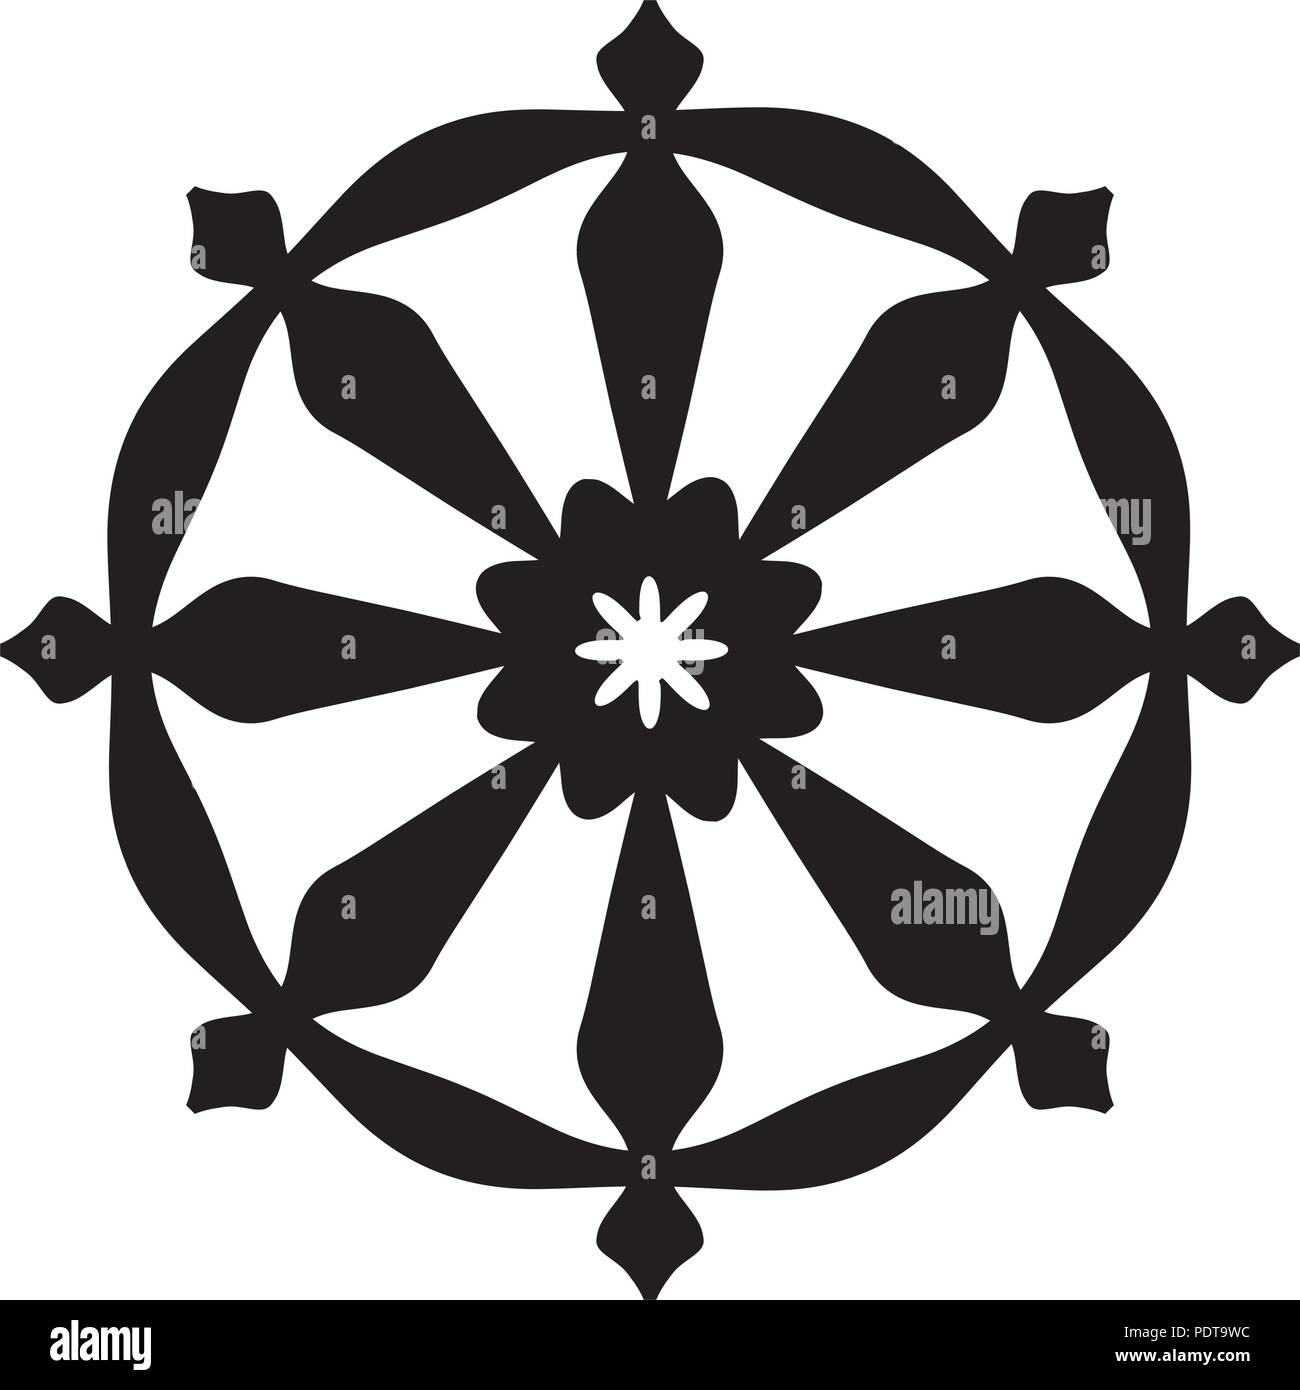 The Wheel of Samsara — Oriental Sacral Religious Symbol of Reincarnation: the cycle of death and rebirth to which life in the material world is bound. Stock Vector